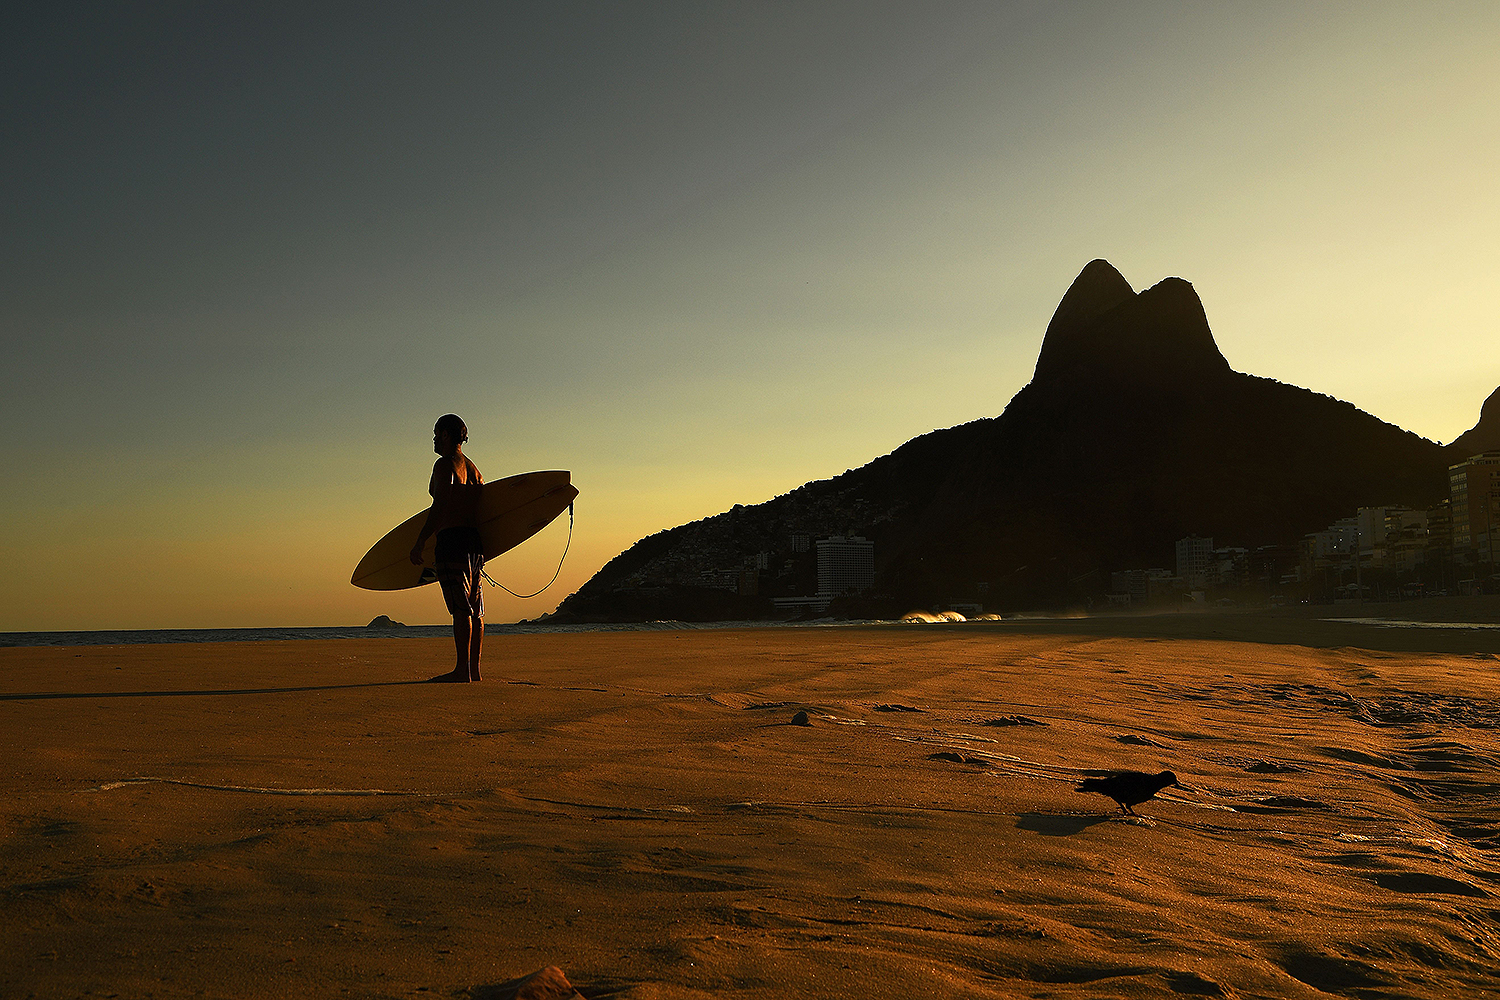 A surfer looks out at his friends in the sea on an empty Ipanema Beach in Rio de Janeiro on April 28. Rio's famous beaches were closed to the public—except for surfers. CARL DE SOUZA/AFP via Getty Images